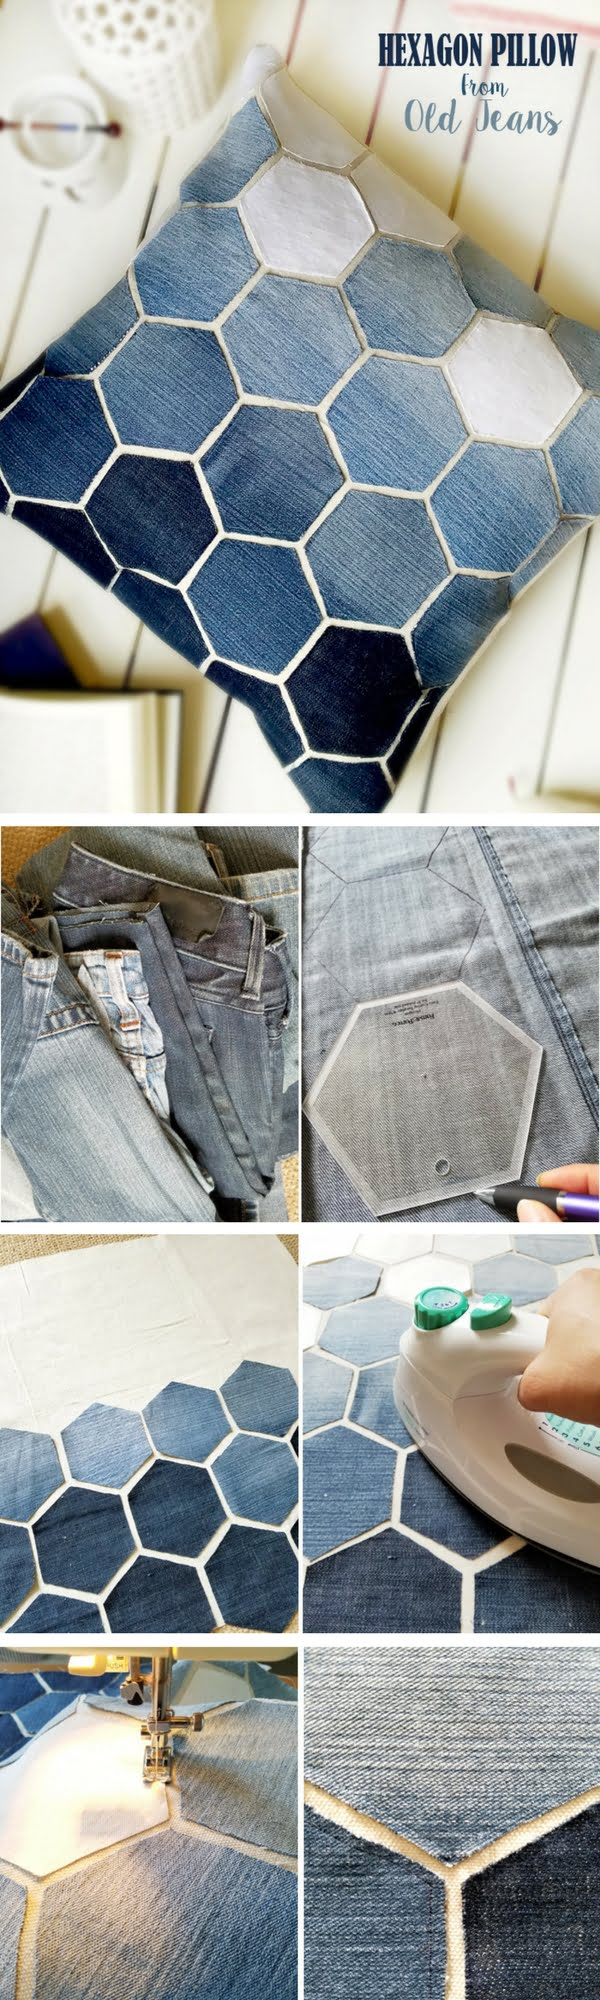 Check out how to make a DIY decorative hexagon pillow form old jeans